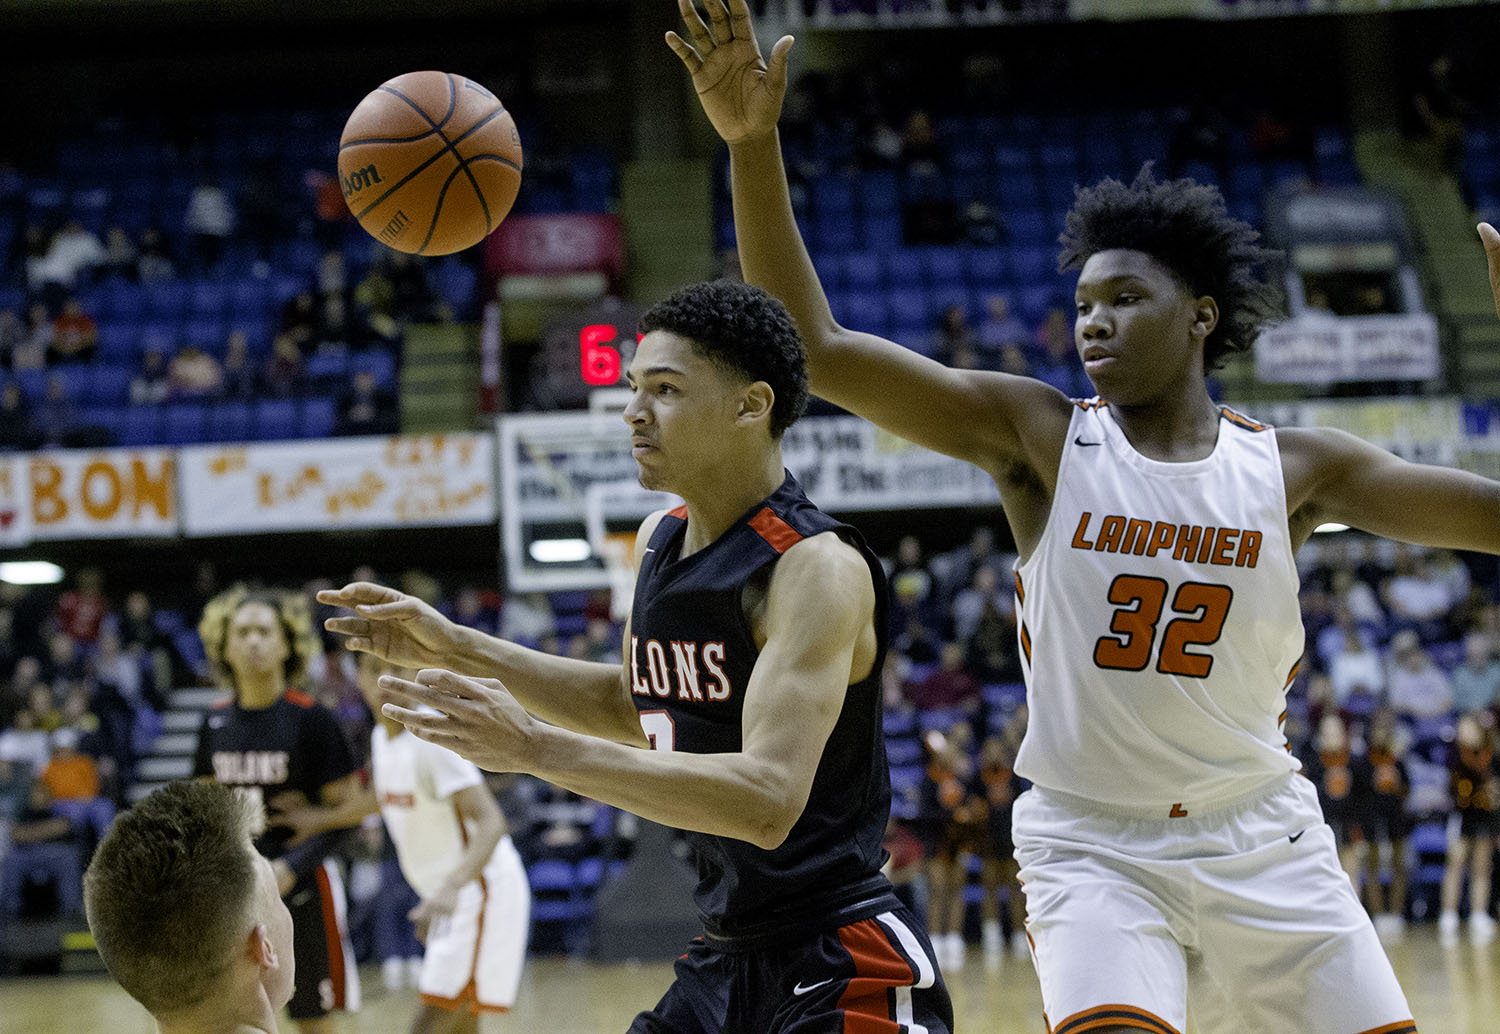 Springfield's Bennie Slater looses the ball under pressure from Lanphier's Jaden Snodgrass and KJ Deberick during the Boys City Tournament at the Bank of Springfield Center Friday, Jan. 18, 2019.  [Ted Schurter/The State Journal-Register]